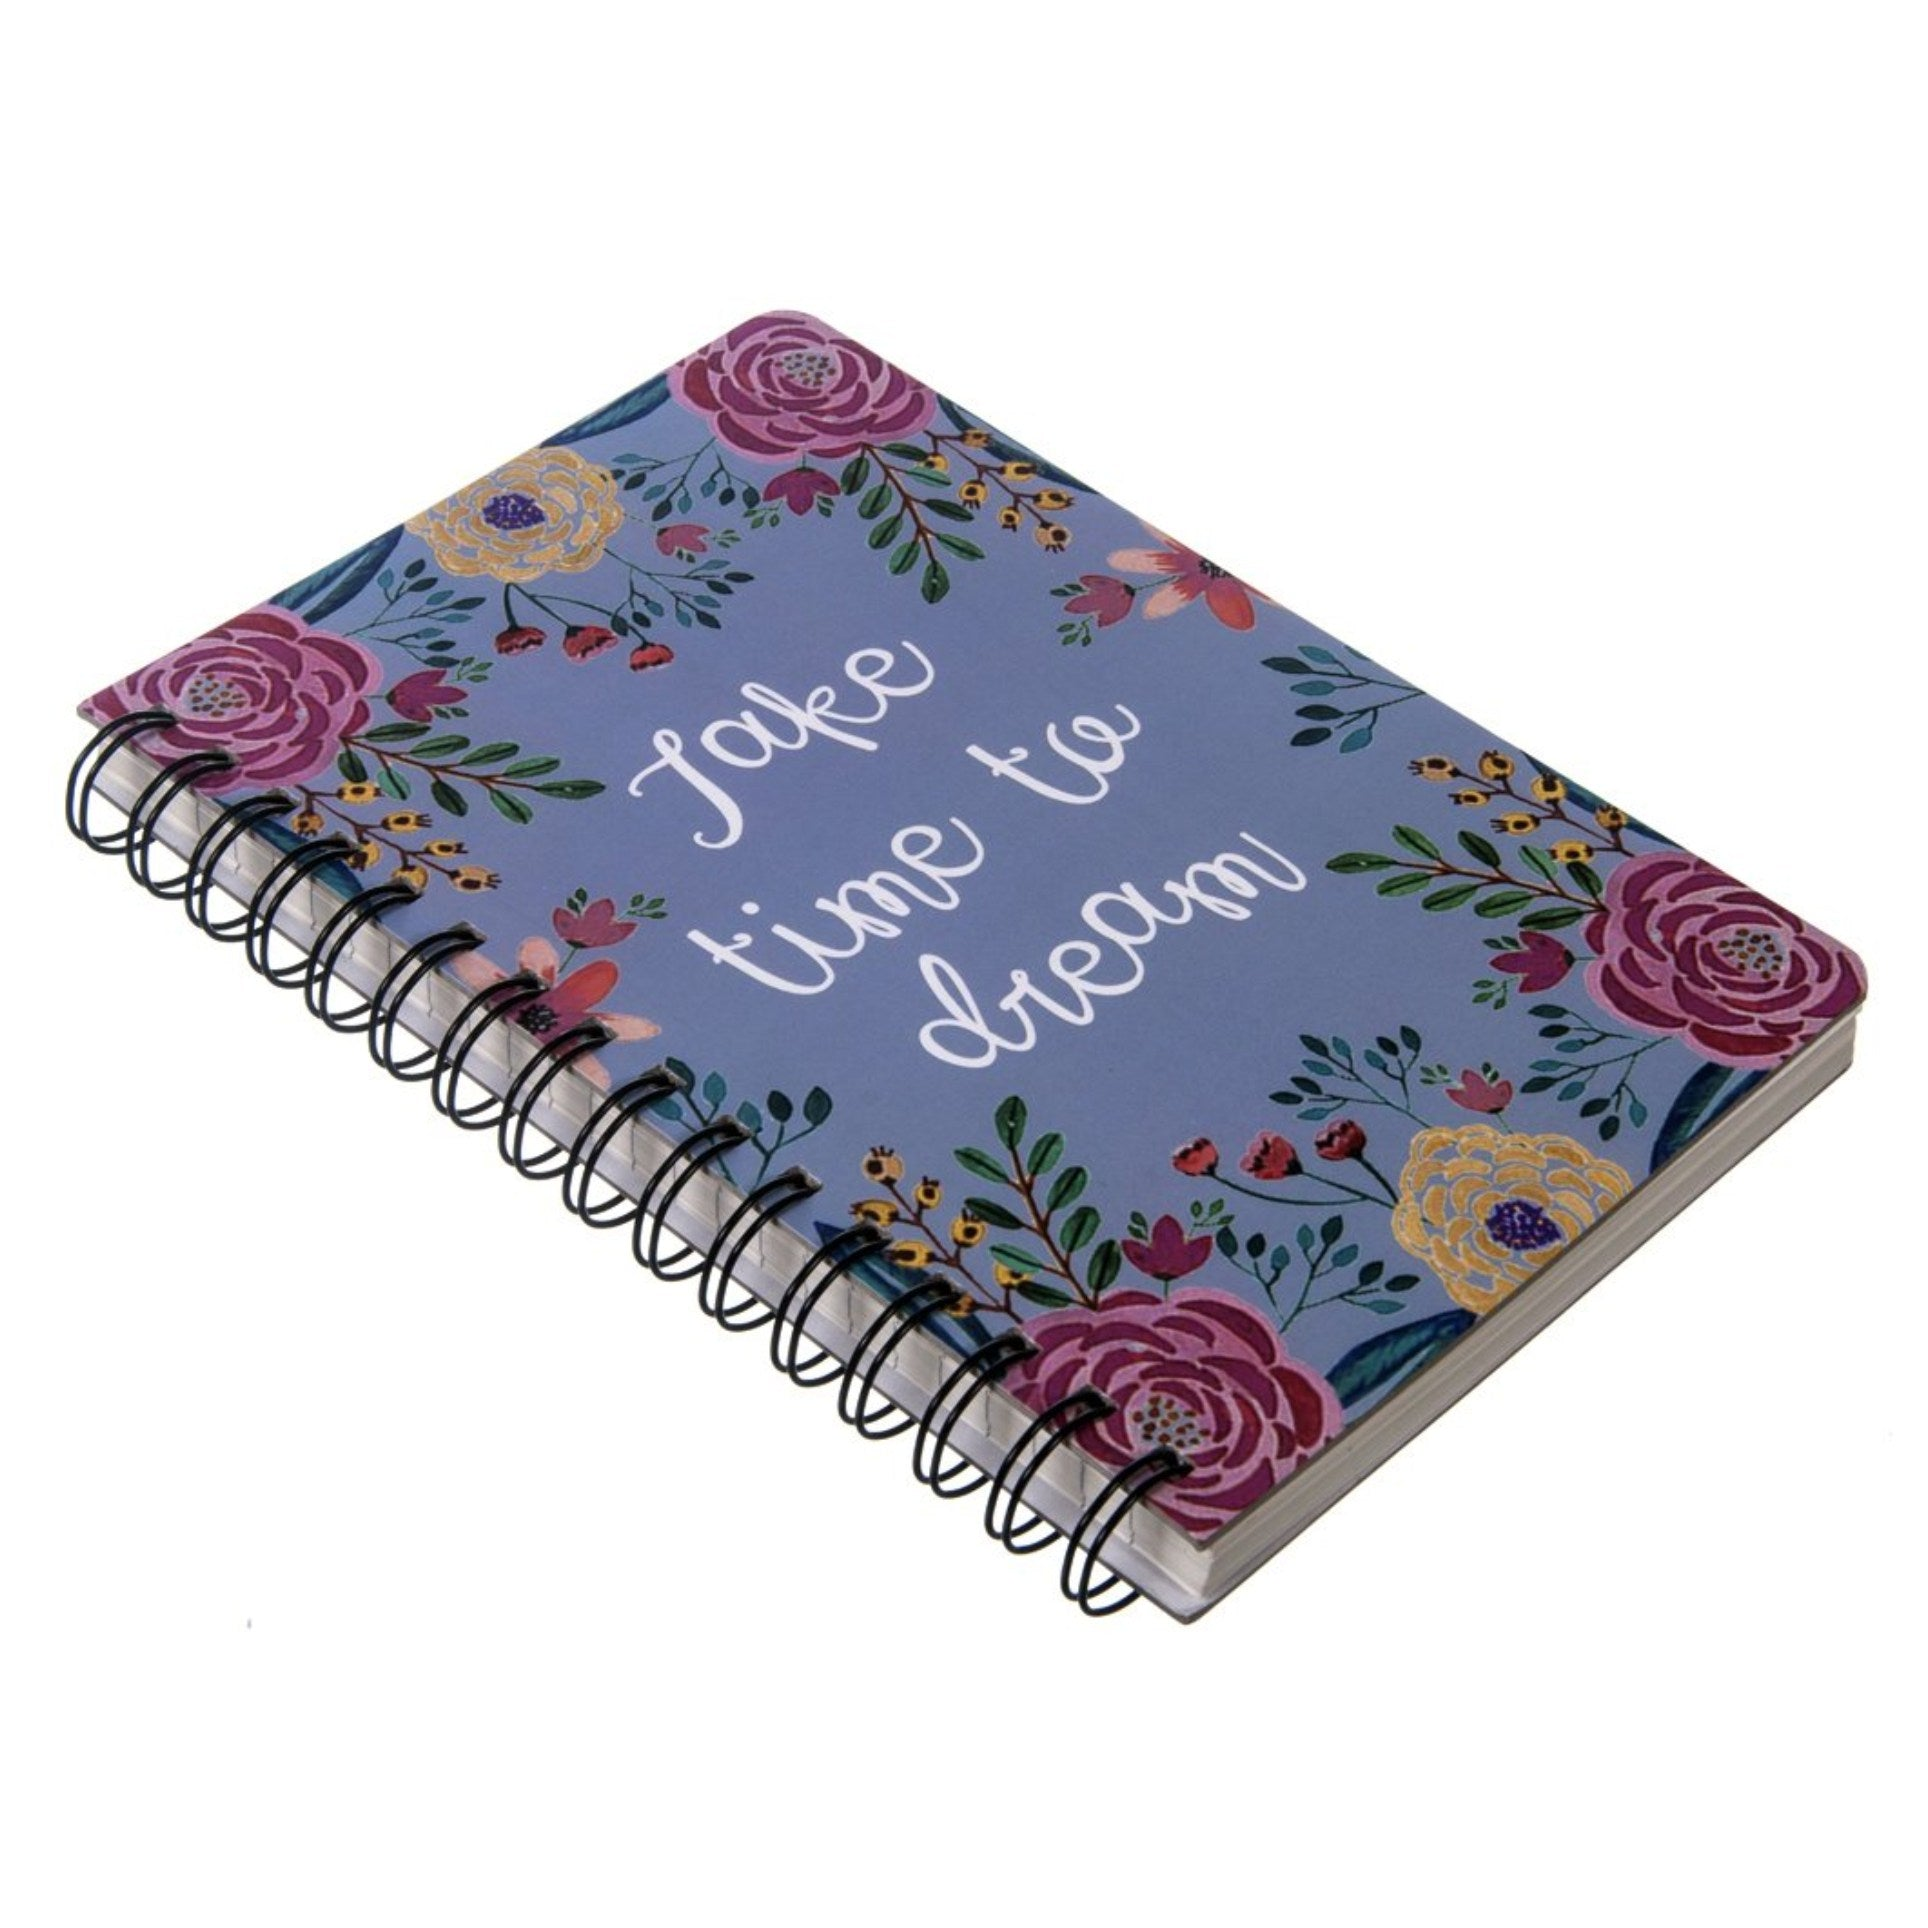 Gifts of Love Viva Notebook A5 - Take Time to Dream